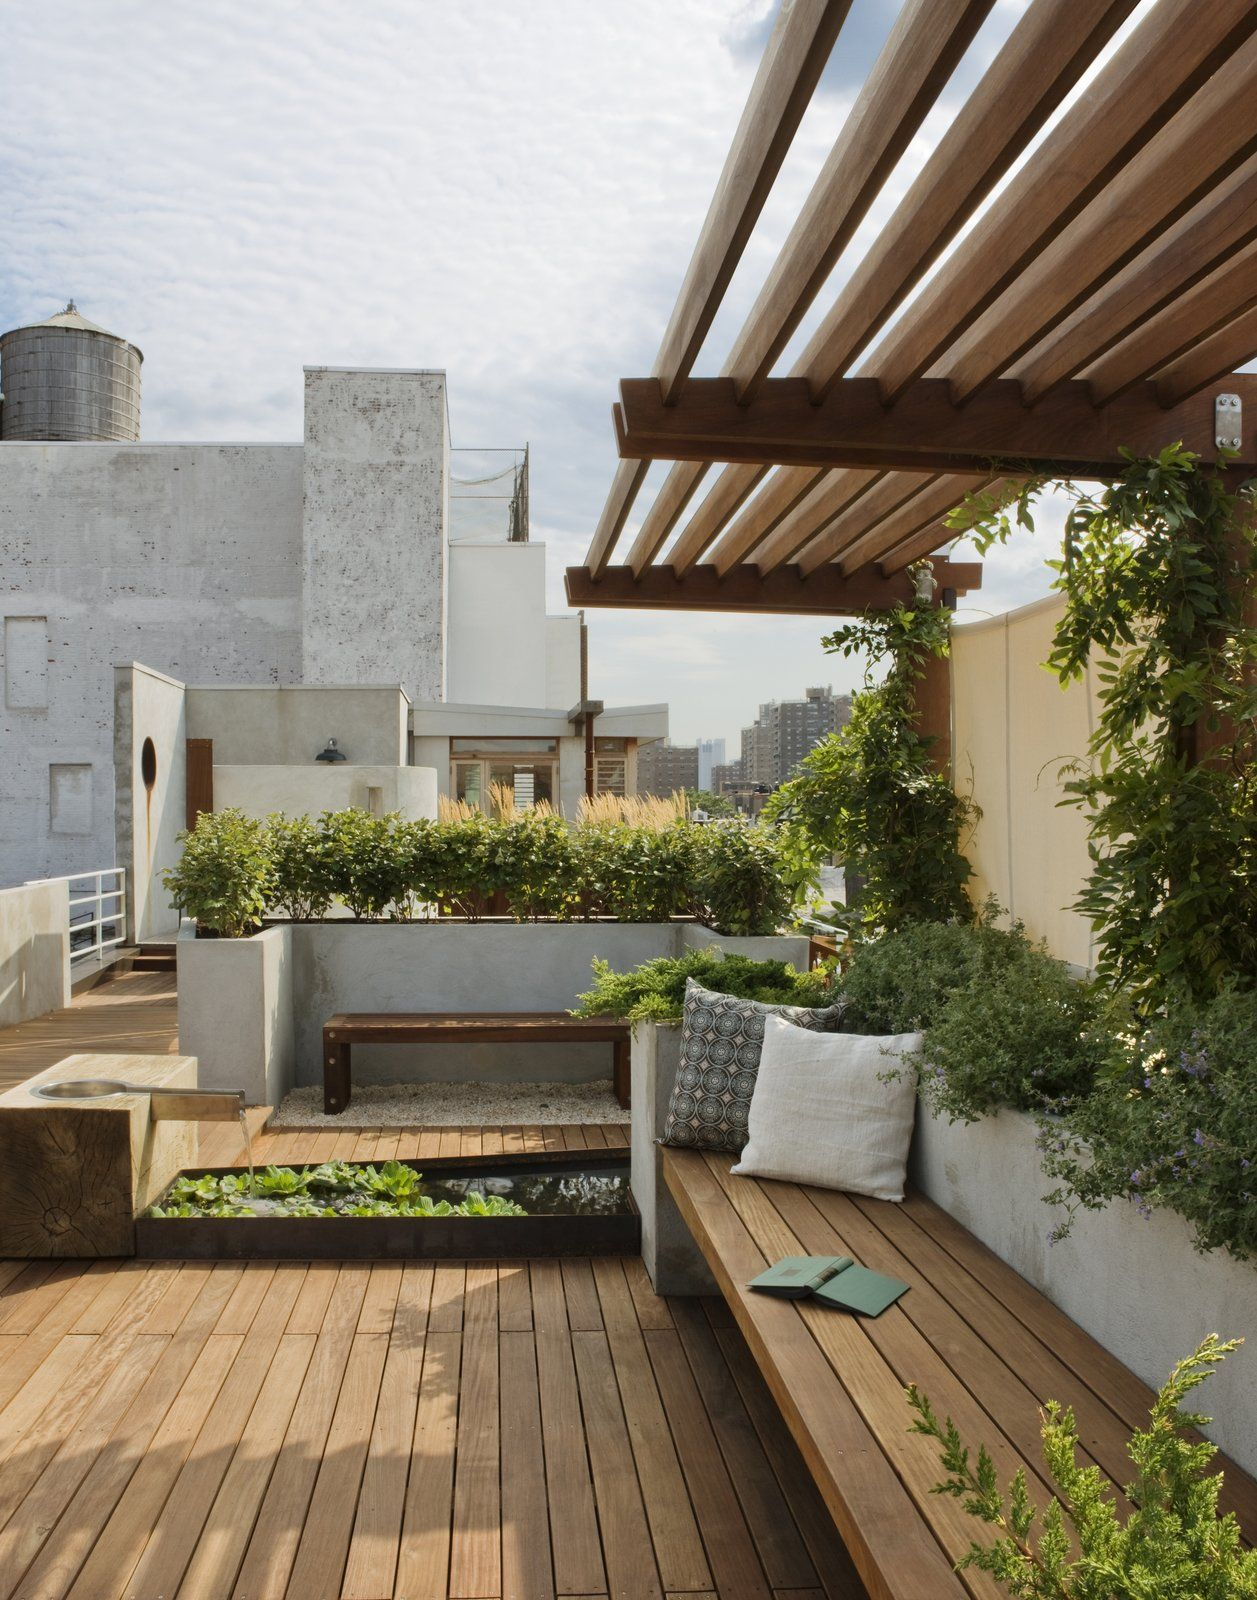 8 Small and Unexpected Garden Oases Hidden in the Middle of Cities is part of garden Decking Wood - These urban refuges effectively use greenery, water features, and delicate lighting in every inch of their modest spaces to create lush escapes that provide a breath of fresh air in the city